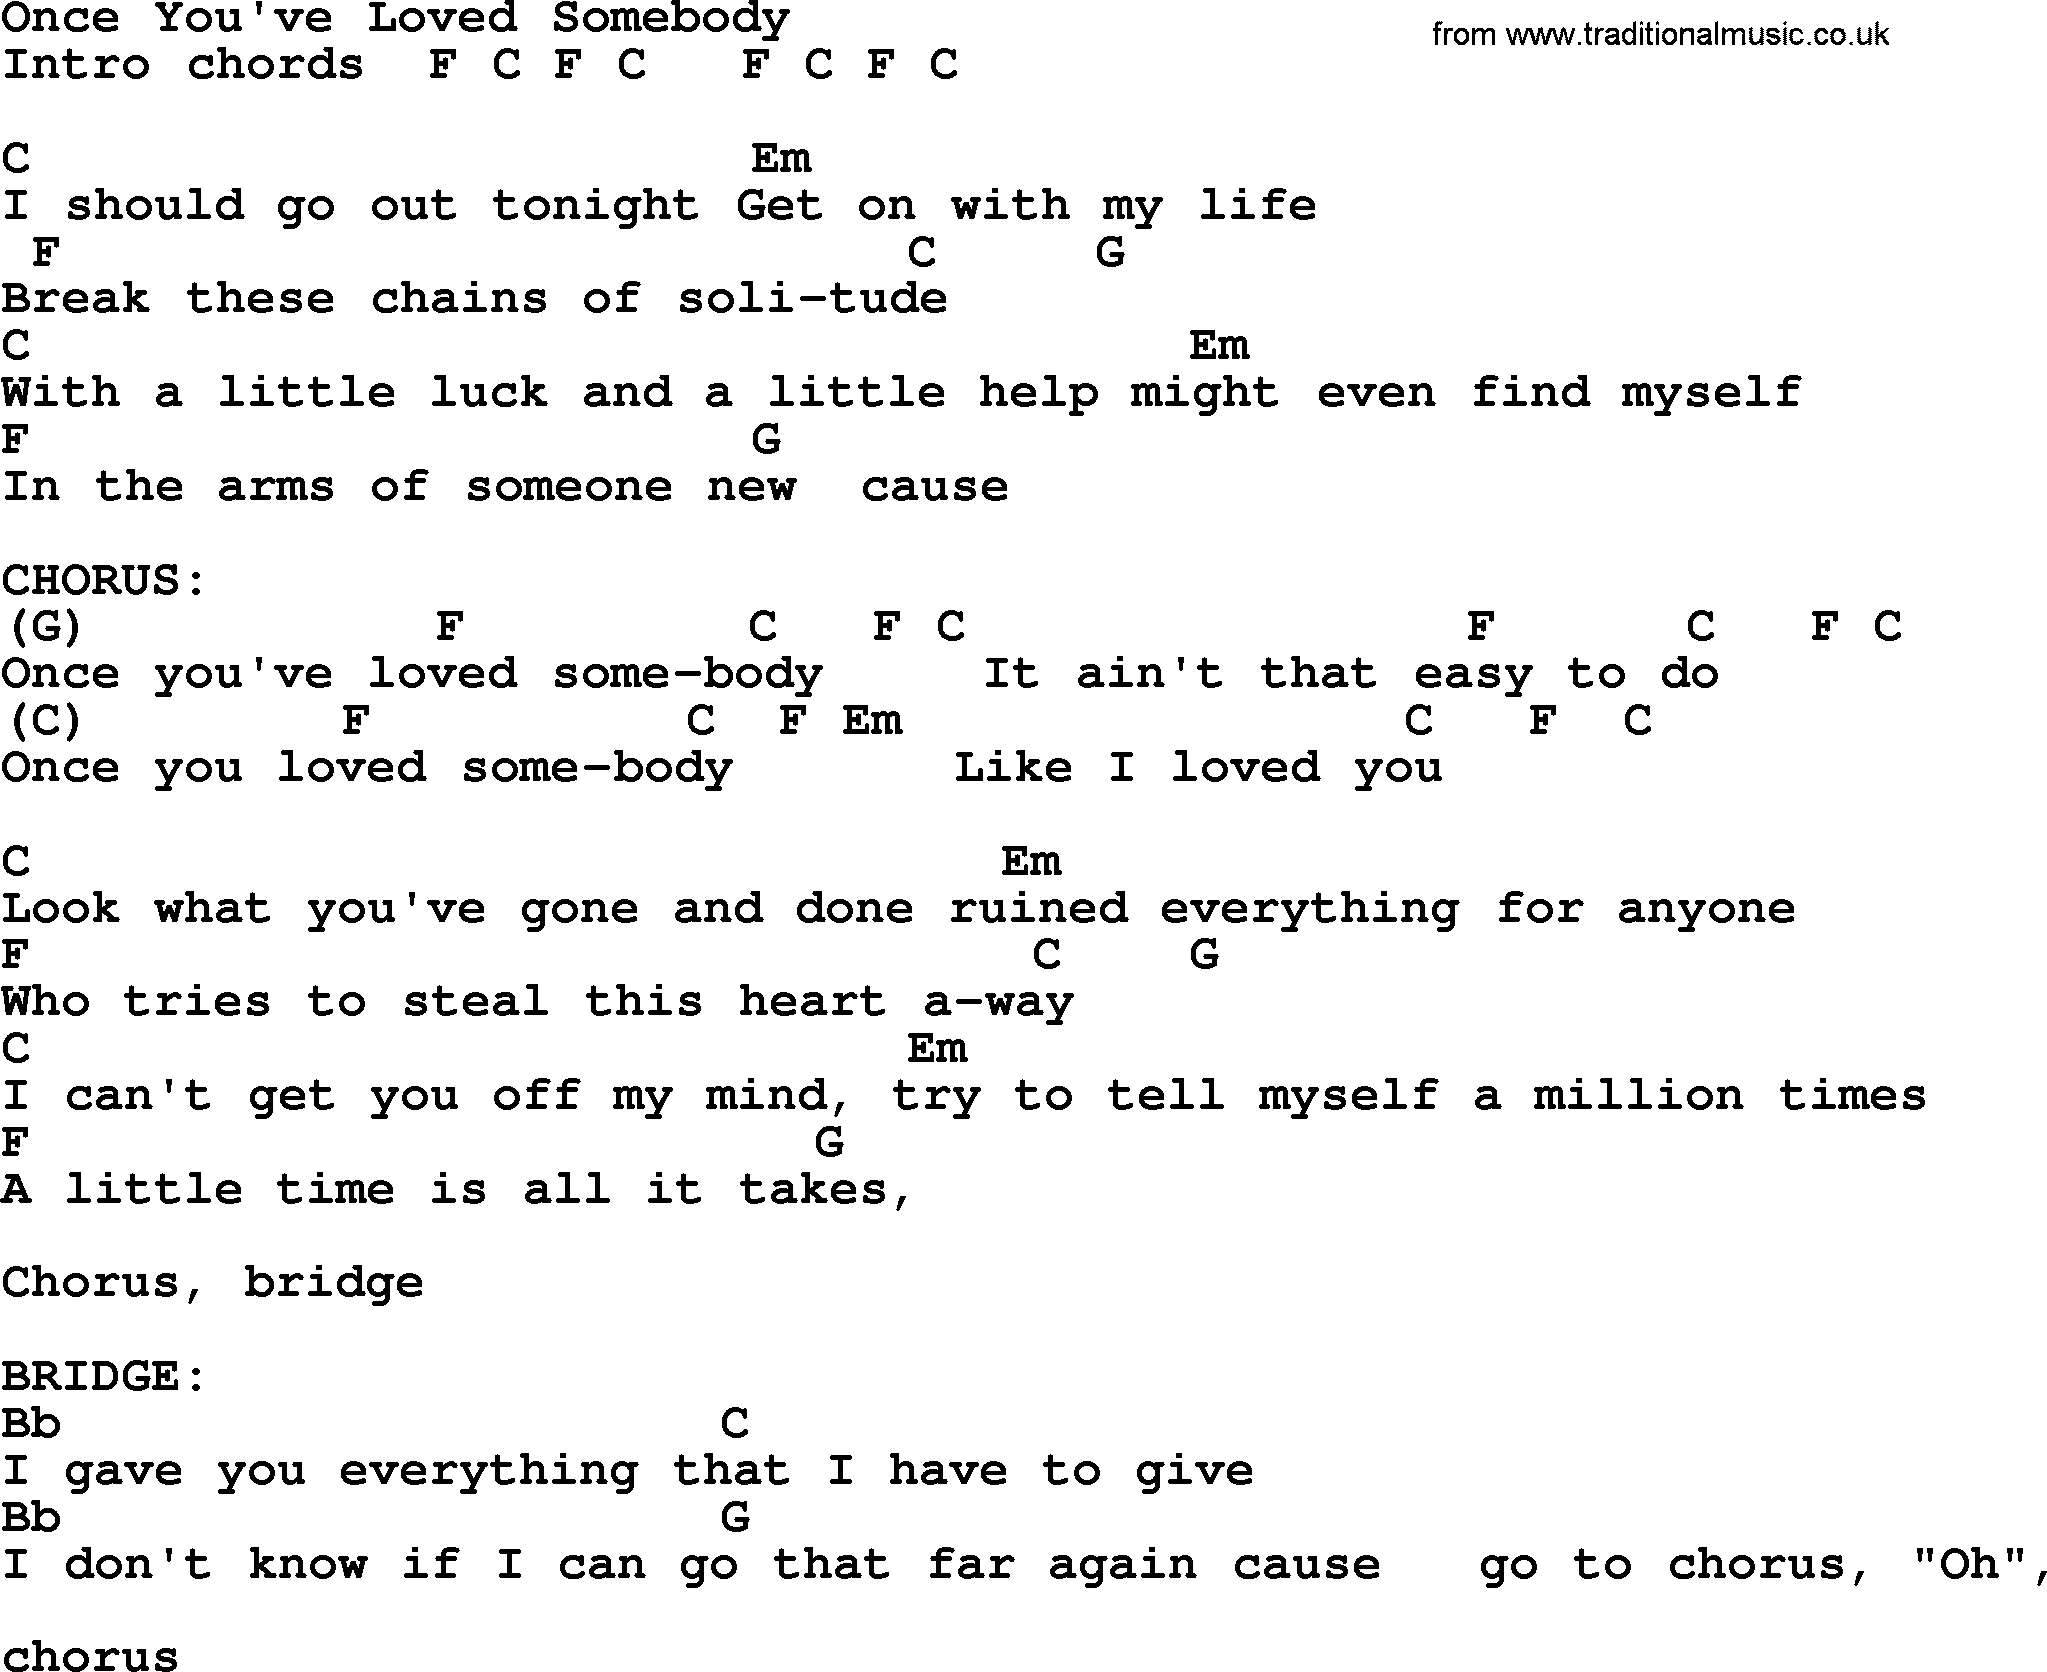 Once Youve Loved Somebody Bluegrass Lyrics With Chords